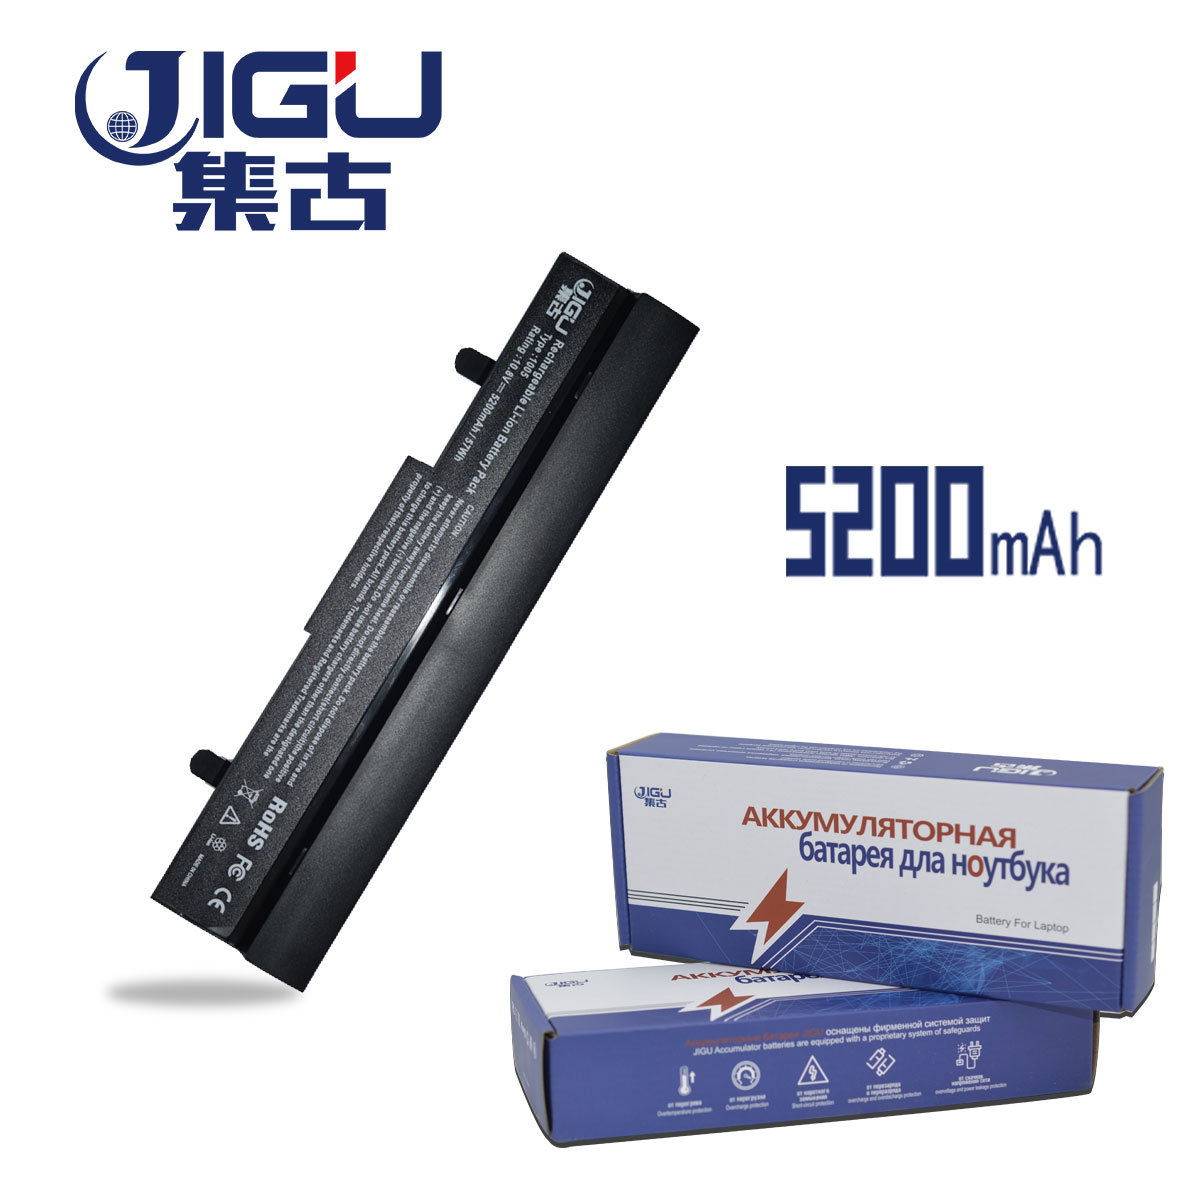 JIGU 5200MAH New Battery For Asus AL31-1005 AL32-1005 ML32-1005 PL32-1005 Eee PC 1001px 1001p 1001 1005 1005PEG 1005PX 1005PR appella 484 1005